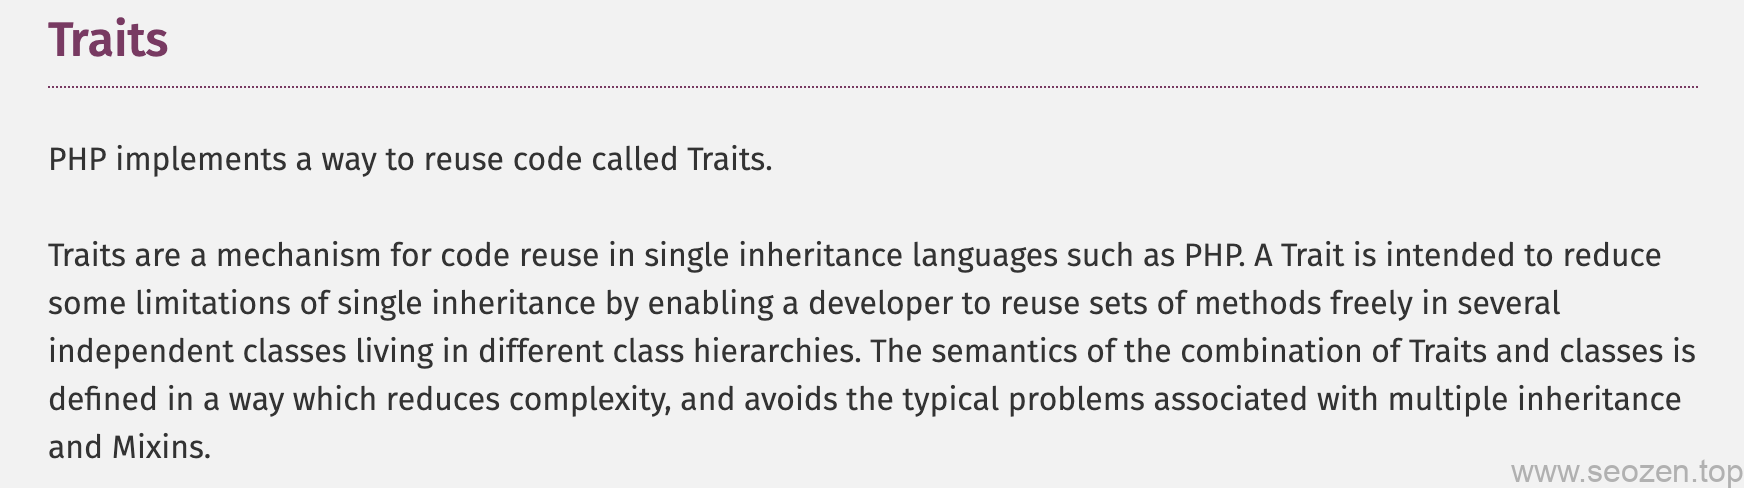 php-traits-definition